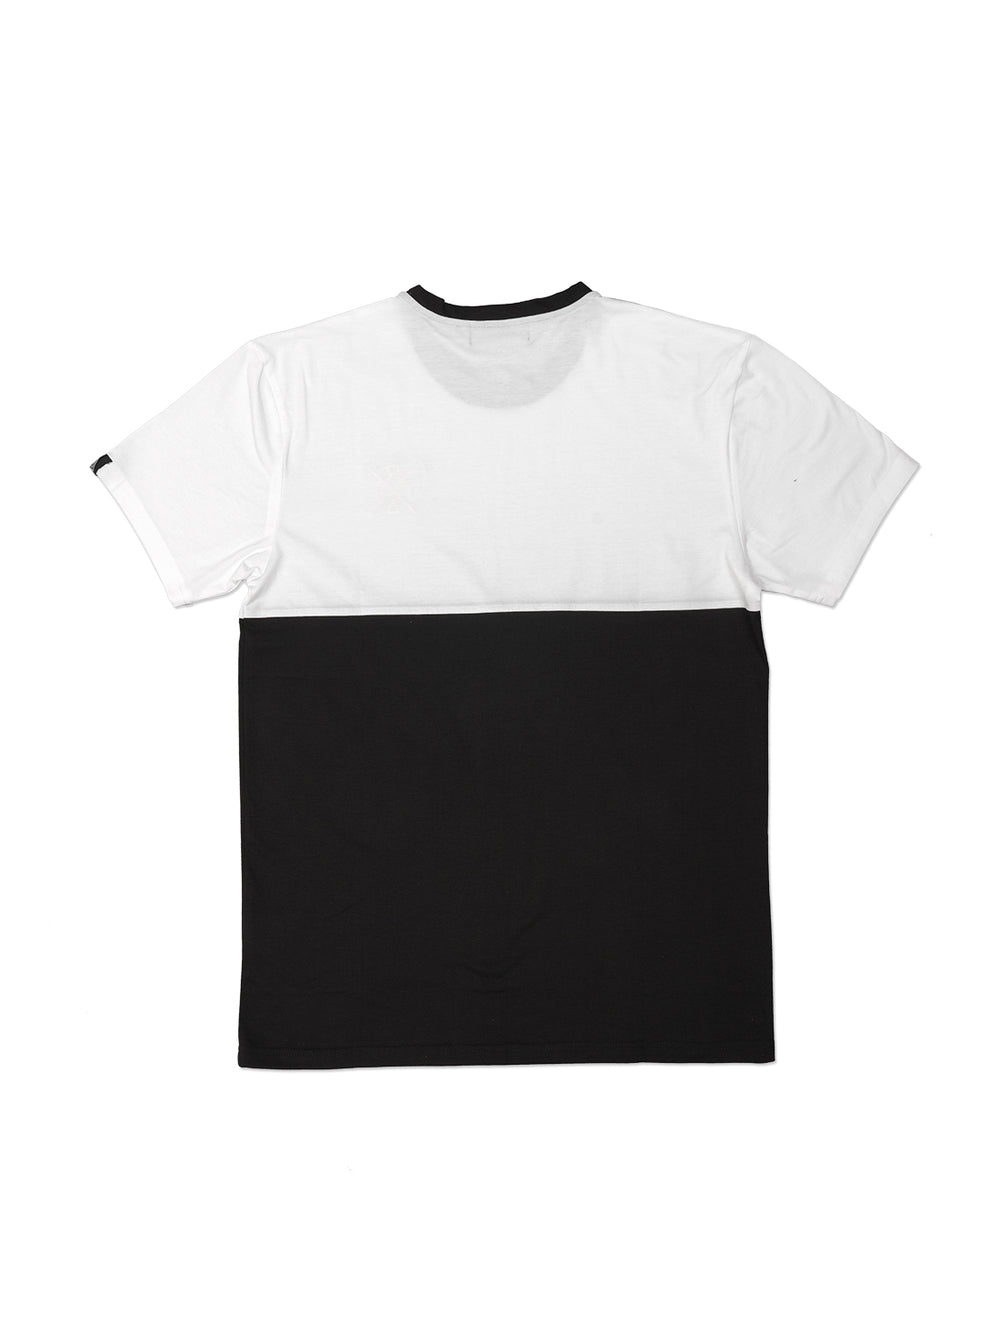 2 Tone BLACK / WHITE Tshirt - Triangulo Swag